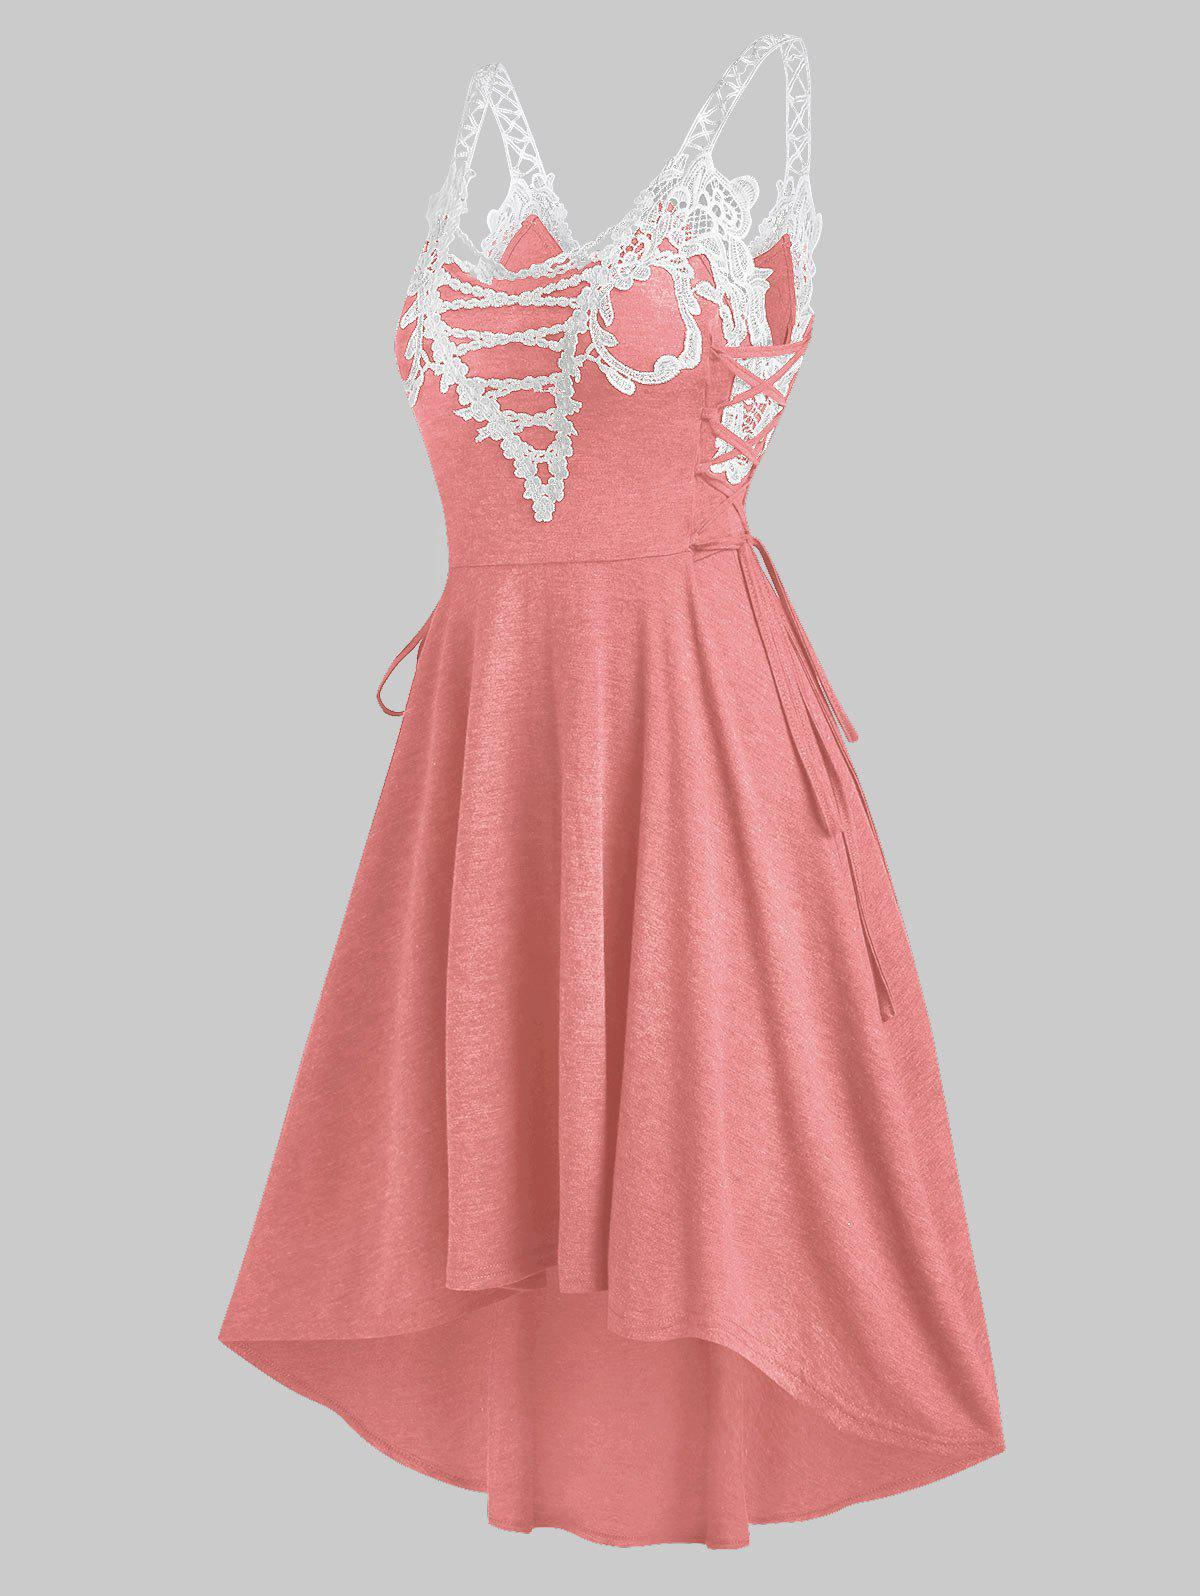 New Sleeveless Lace Insert Lace-up High Low Dress